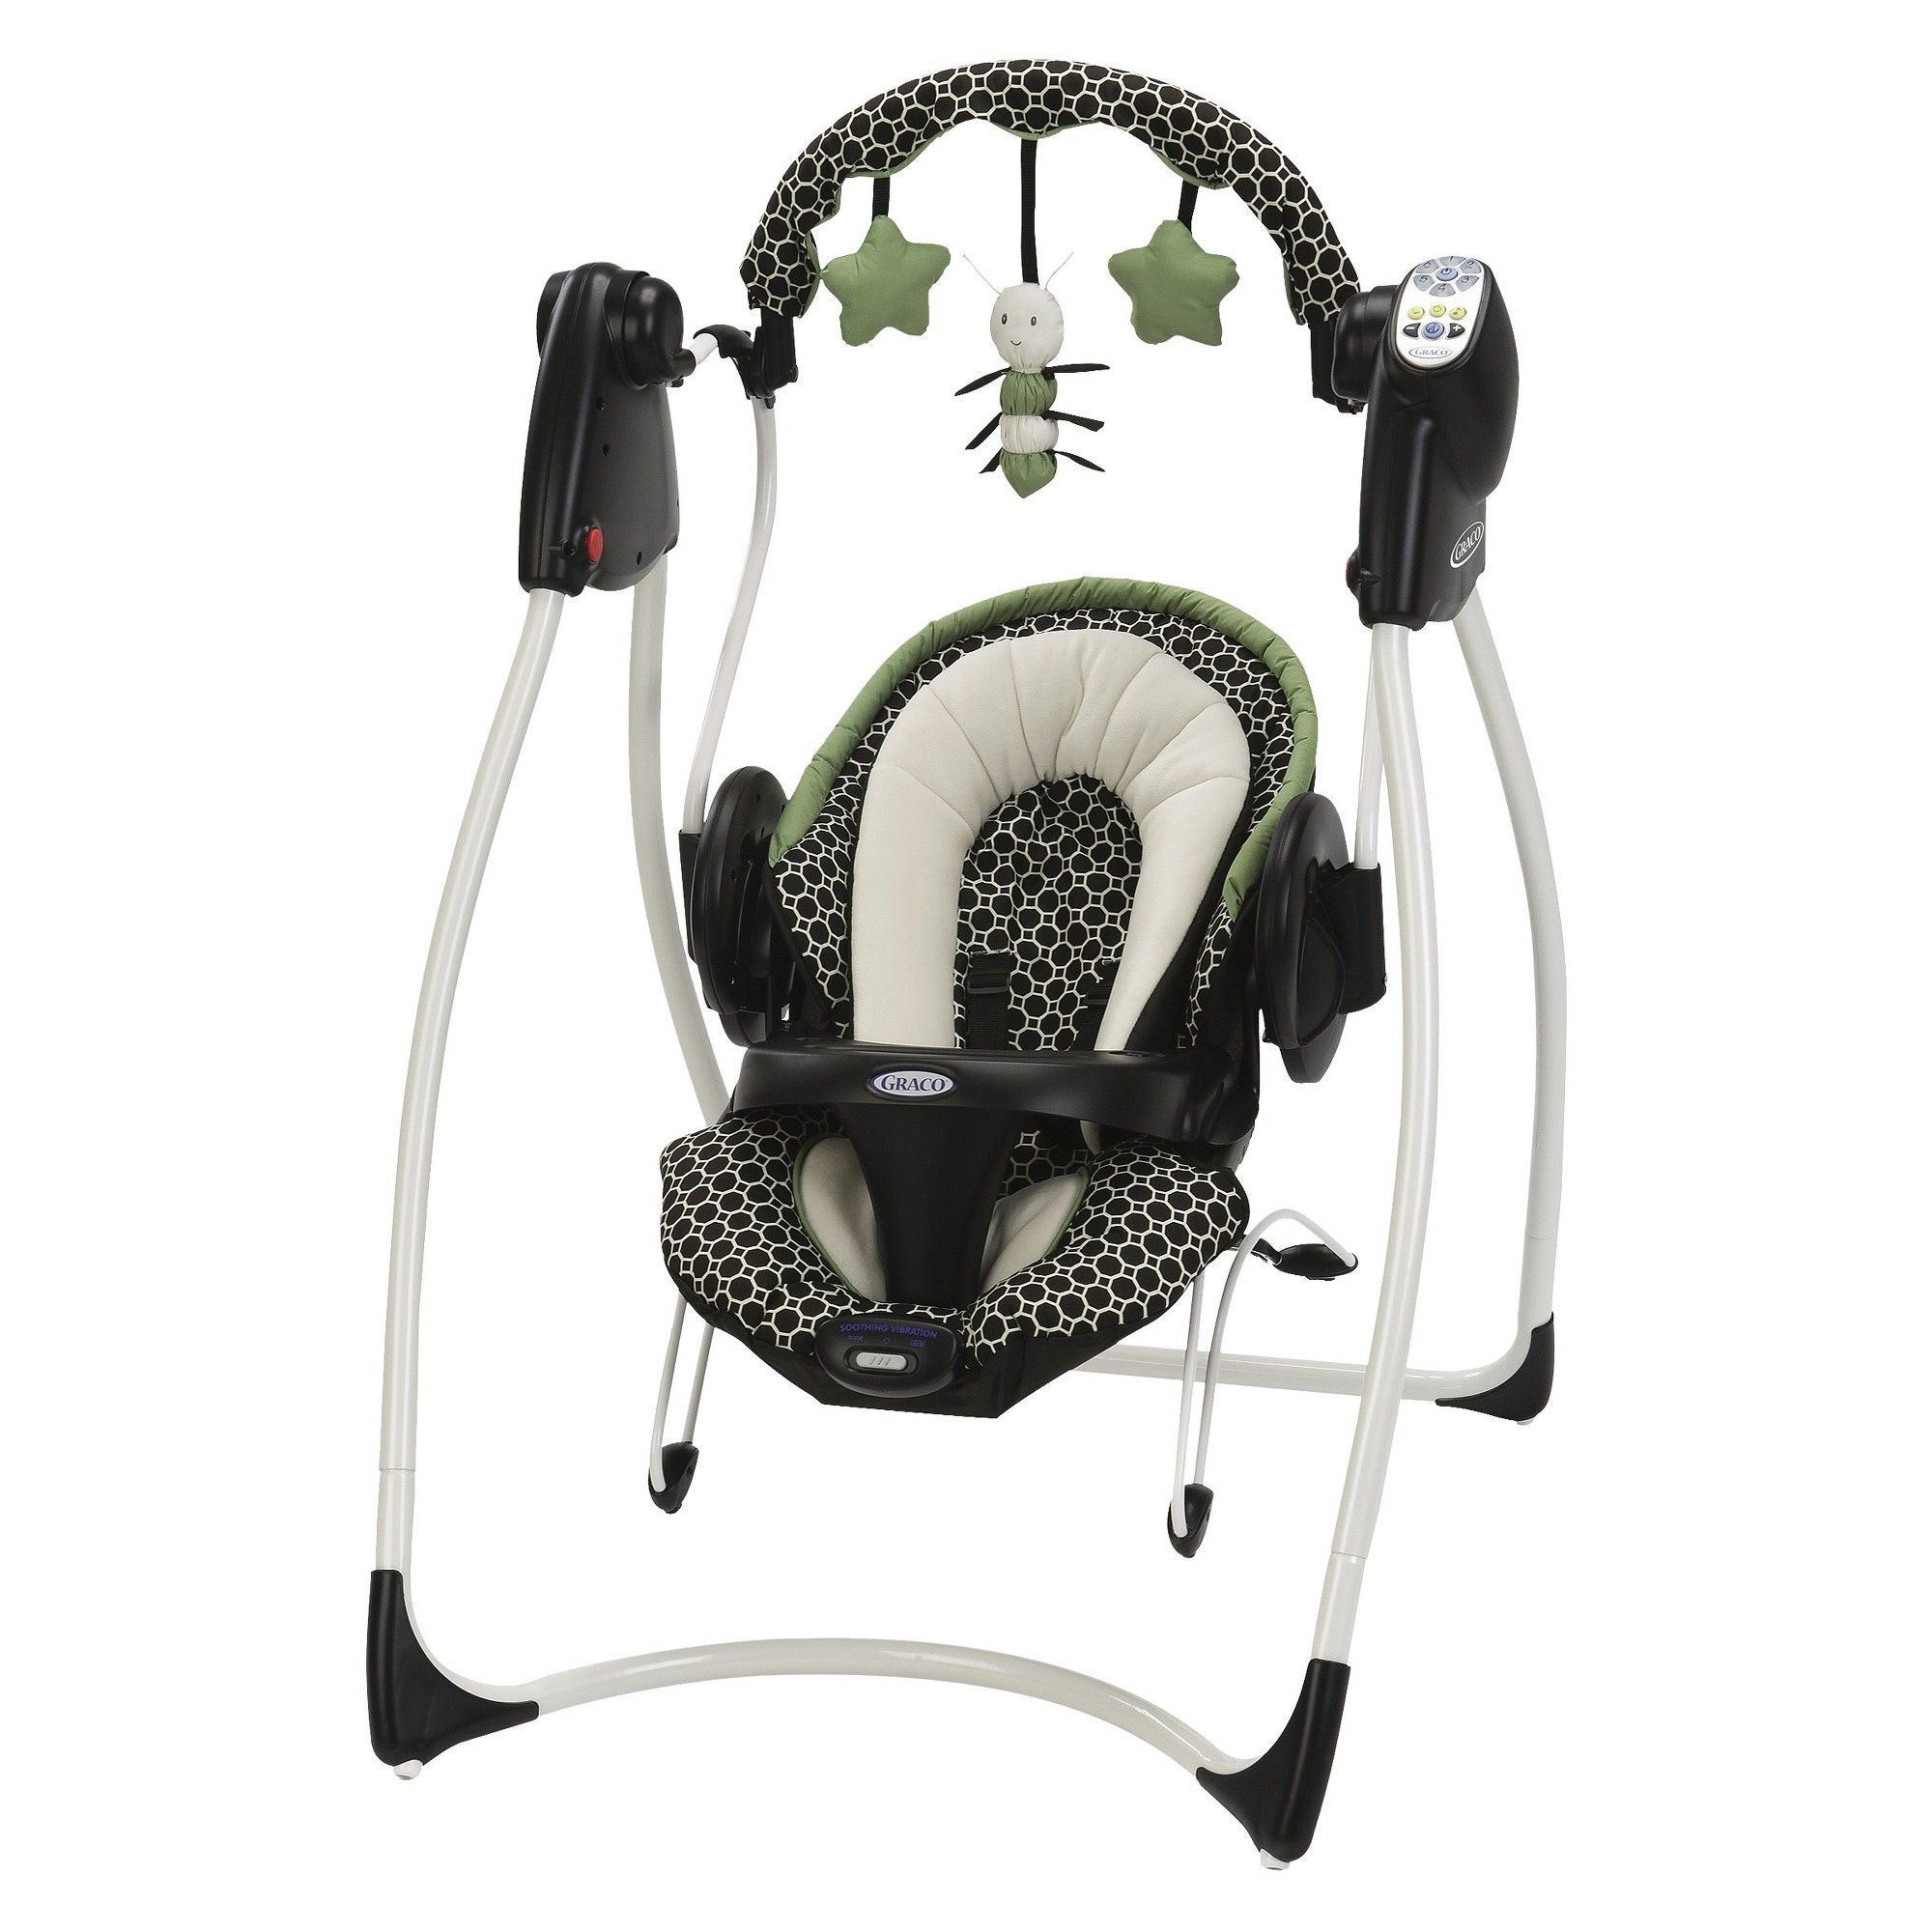 Graco high chair 4 in 1 graco duo  in  swing and bouncer  hudson  products  pinterest